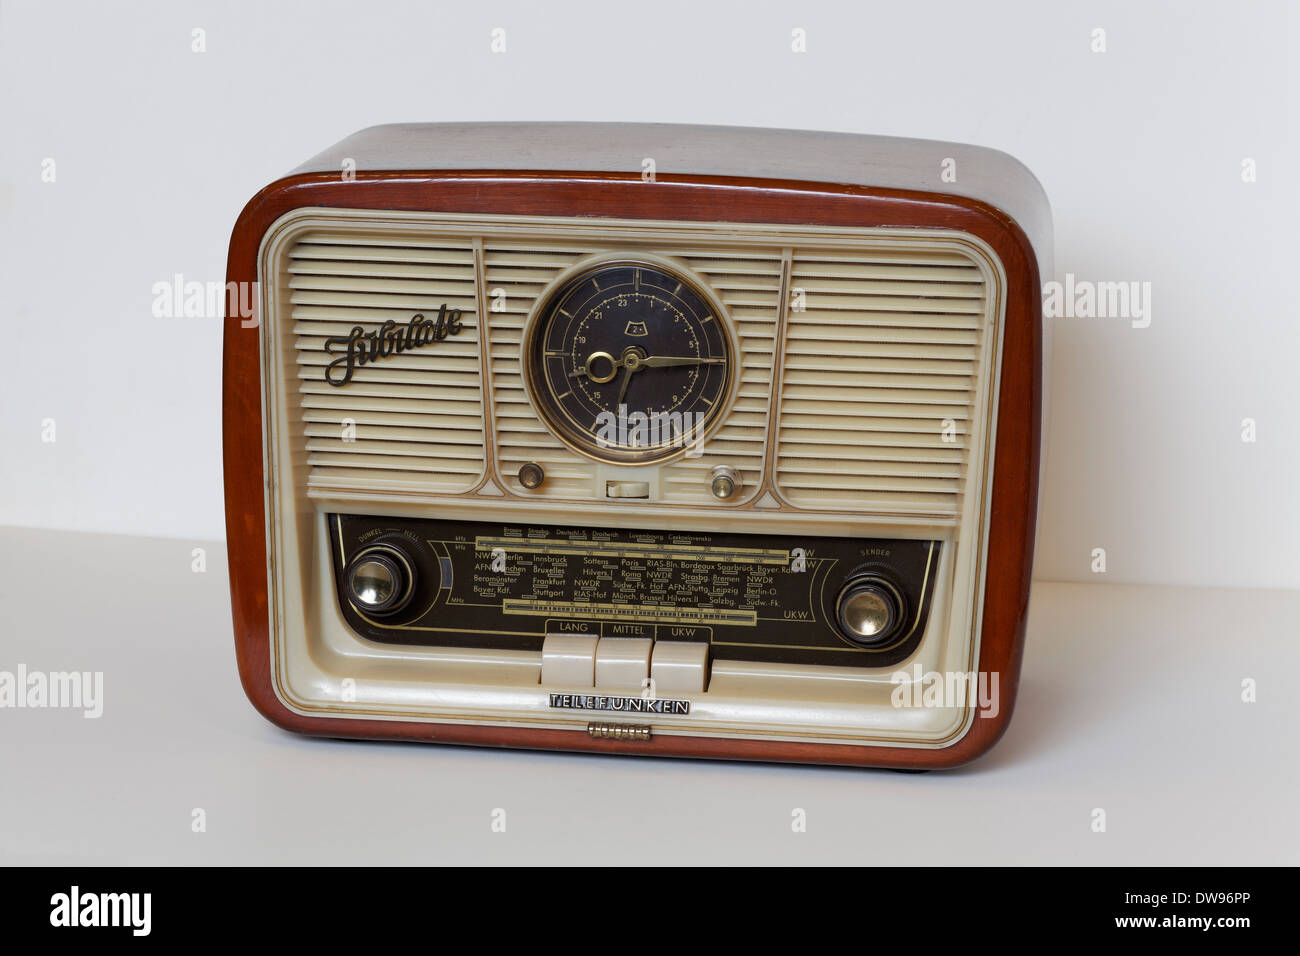 Telefunken model Jubilate, miniature radio from the 1950's, Radio Museum Duisburg, North Rhine-Westphalia, Germany - Stock Image